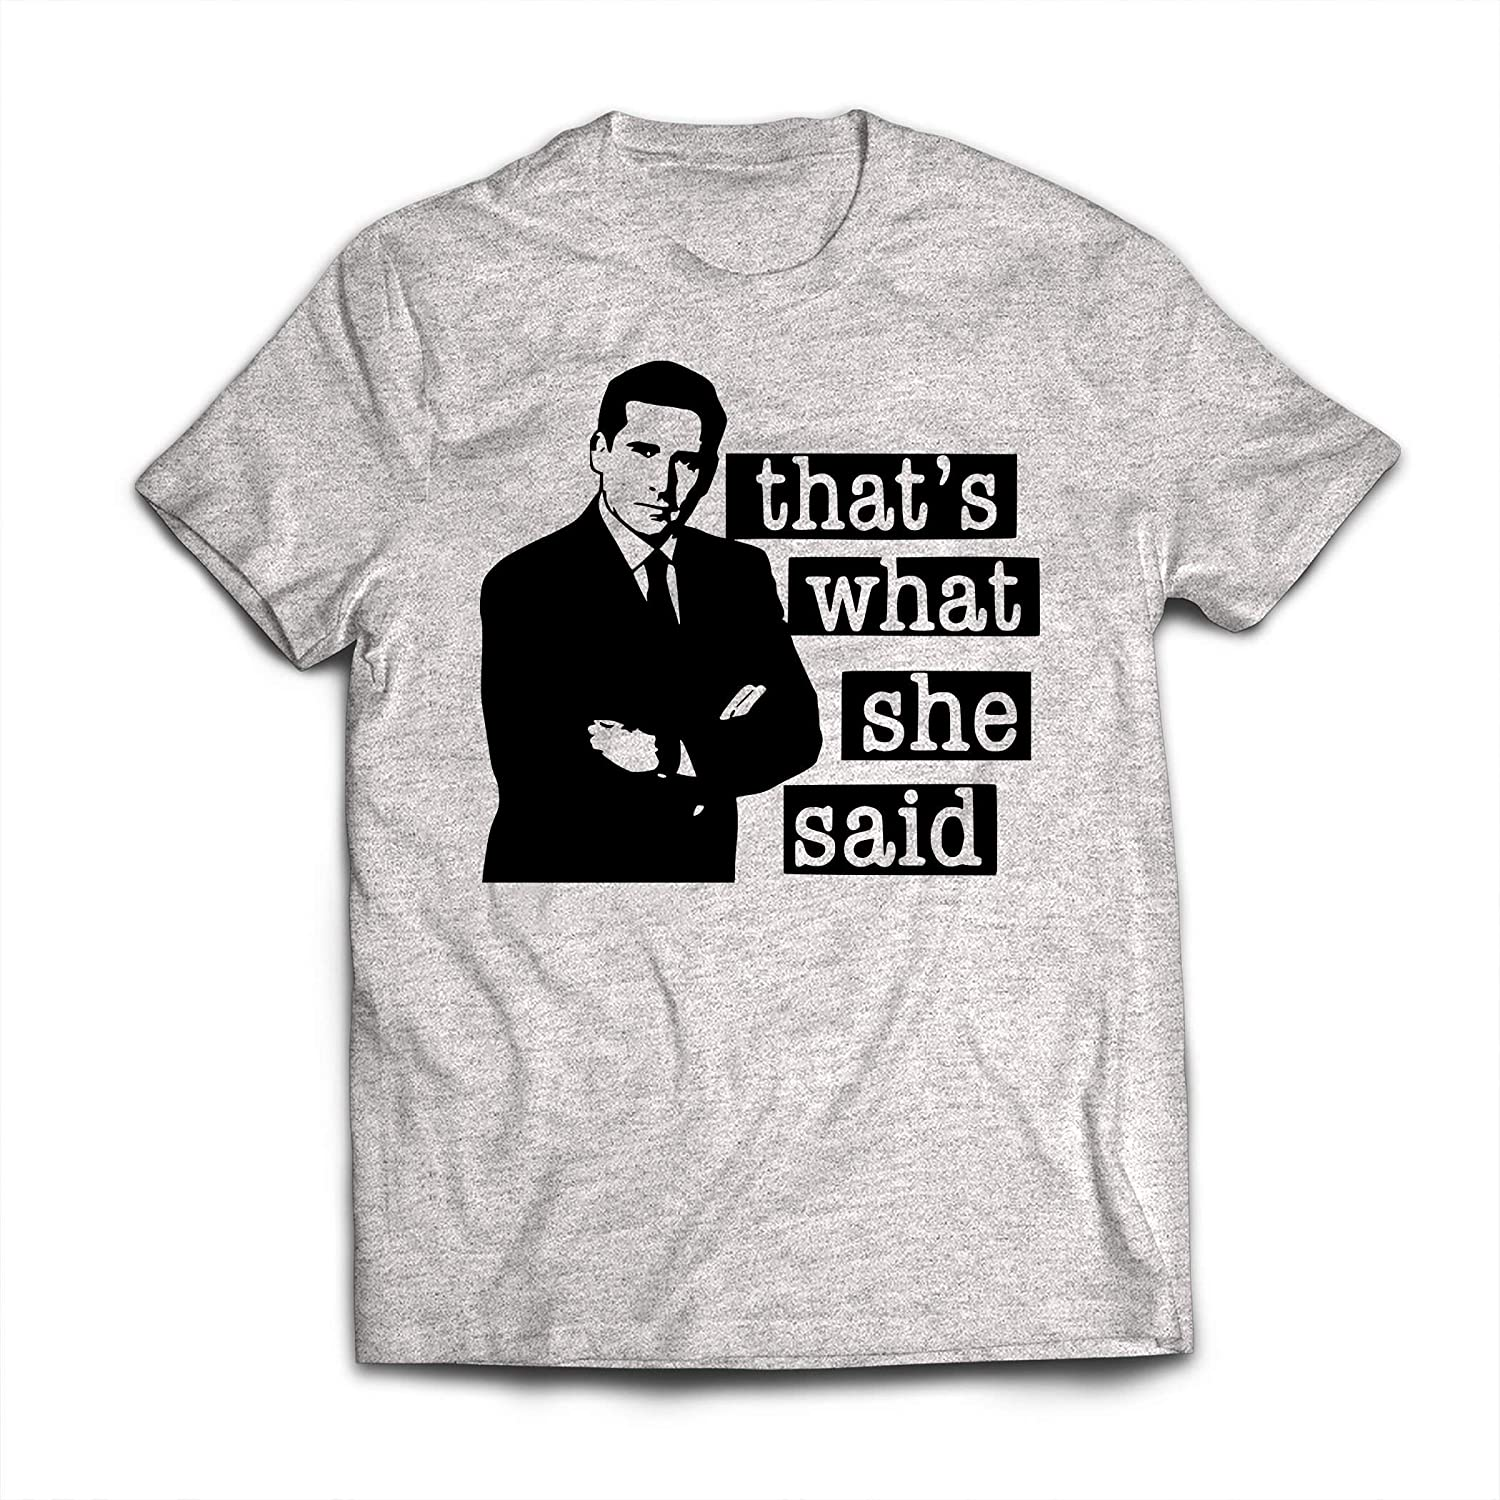 Thats What She Said T Shirt, Michael Scott Shirt, The Office Tshirts, Funny Tshirt